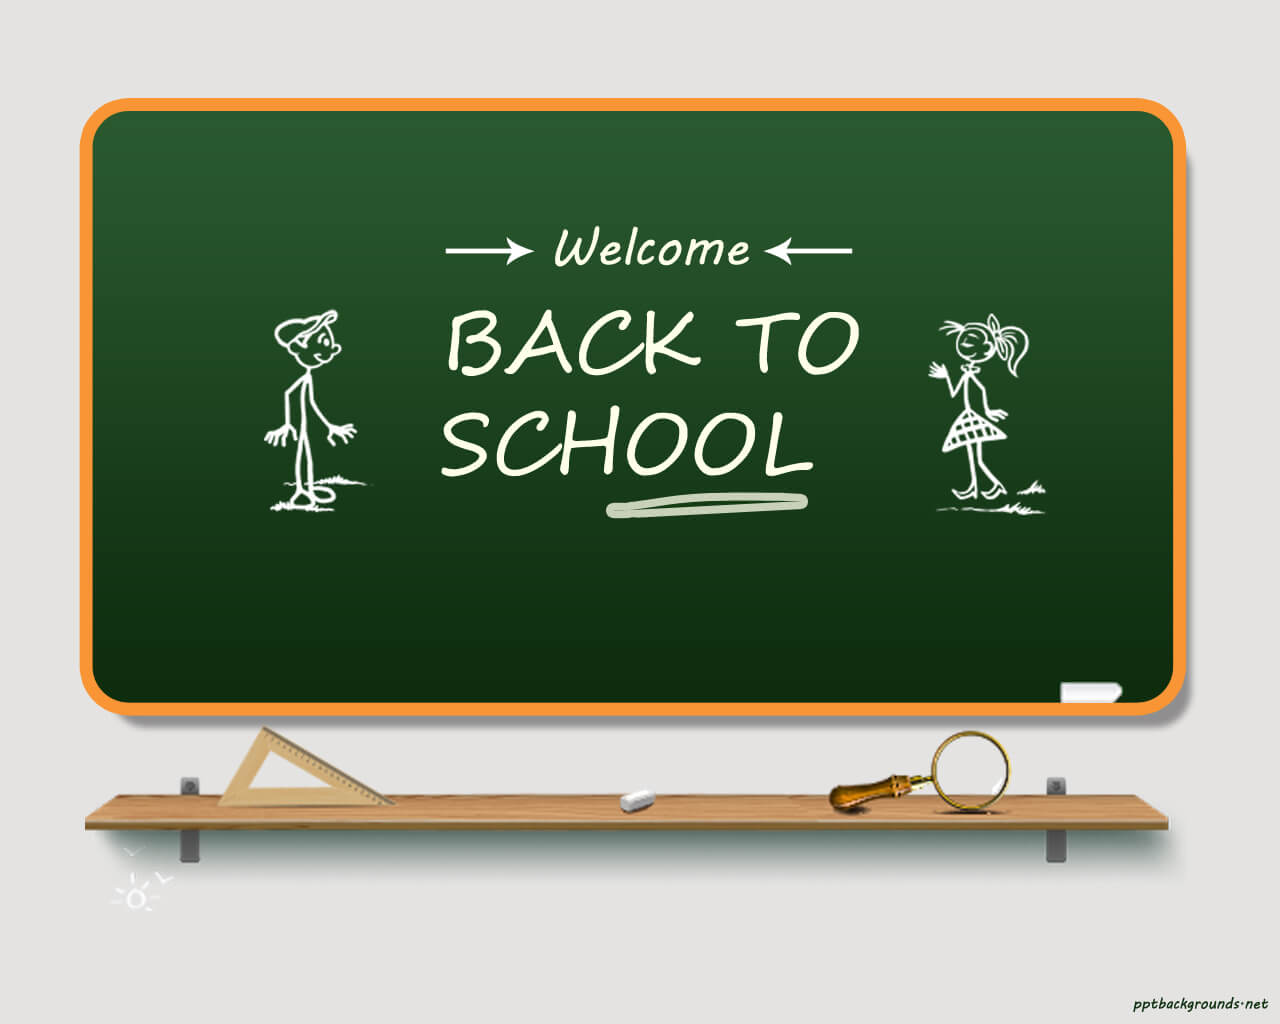 Back To School 2014 - 2015 Backgrounds For Powerpoint With Back To School Powerpoint Template